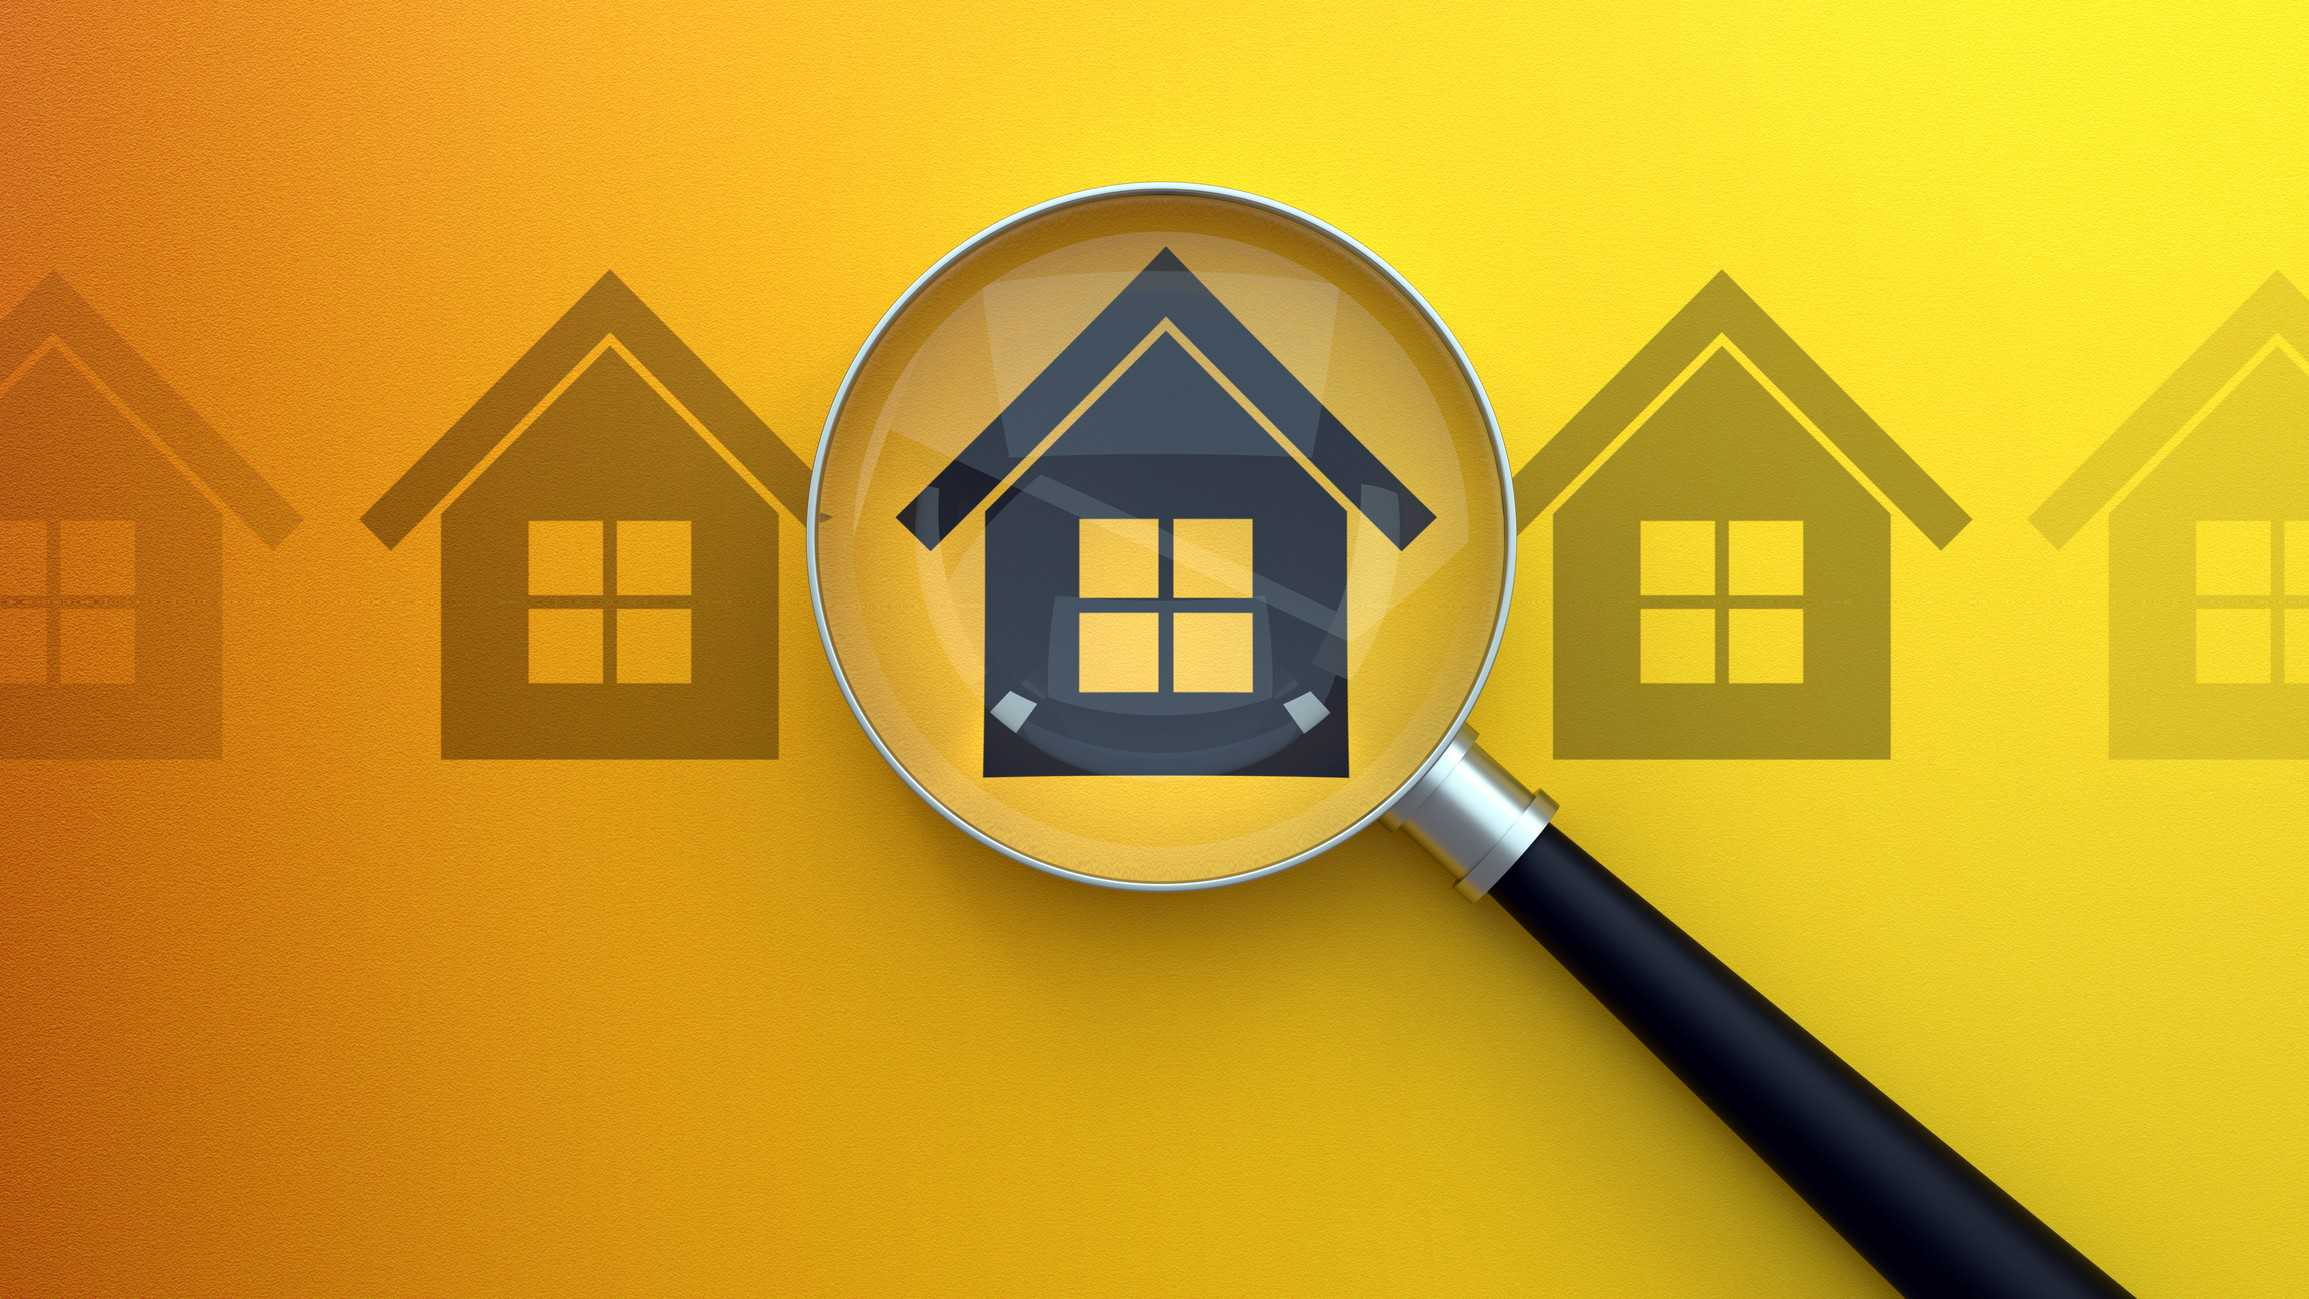 illustration of three houses with one under a magnifying glass signifying mcgrath share price on watch